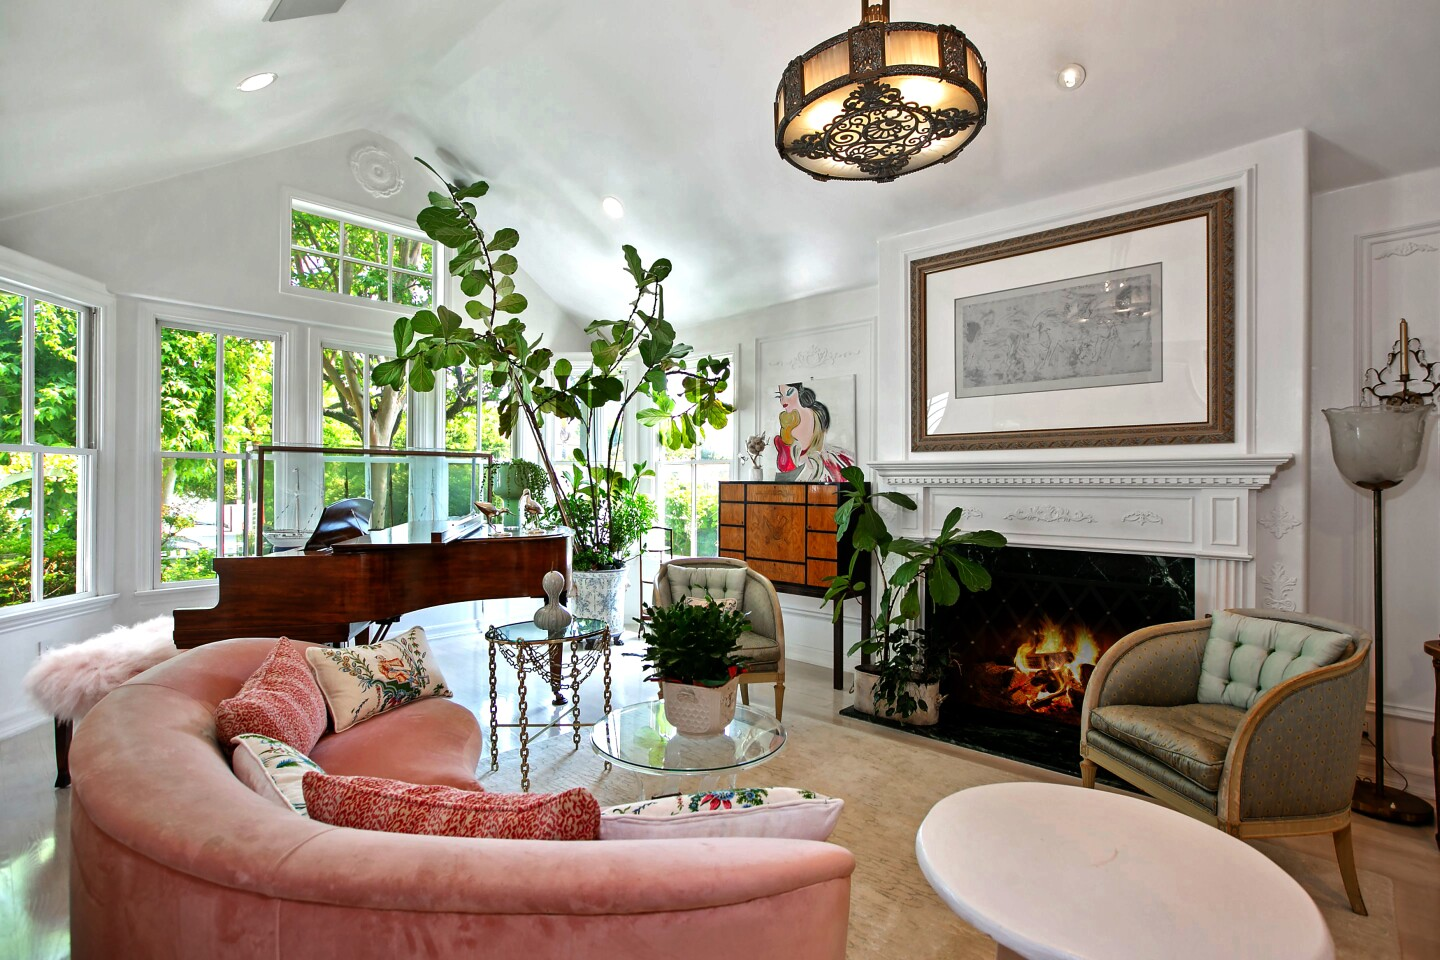 Hot Property | Kirsten Dunst sells her Toluca Lake home to actress Annie Potts